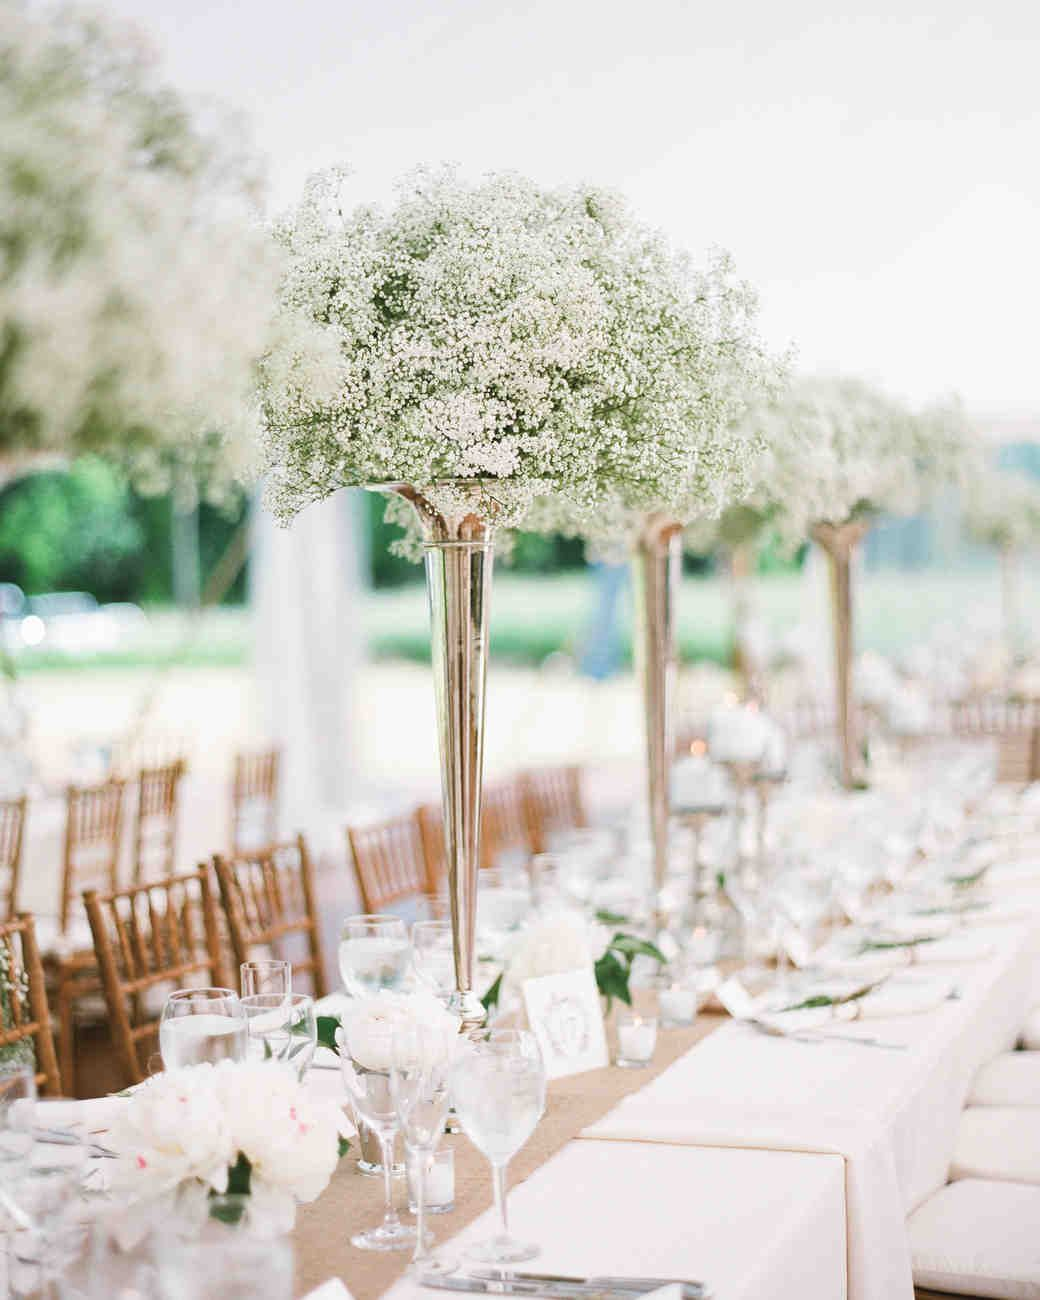 Affordable Wedding Centerpieces That Don\'t Look Cheap | Martha ...